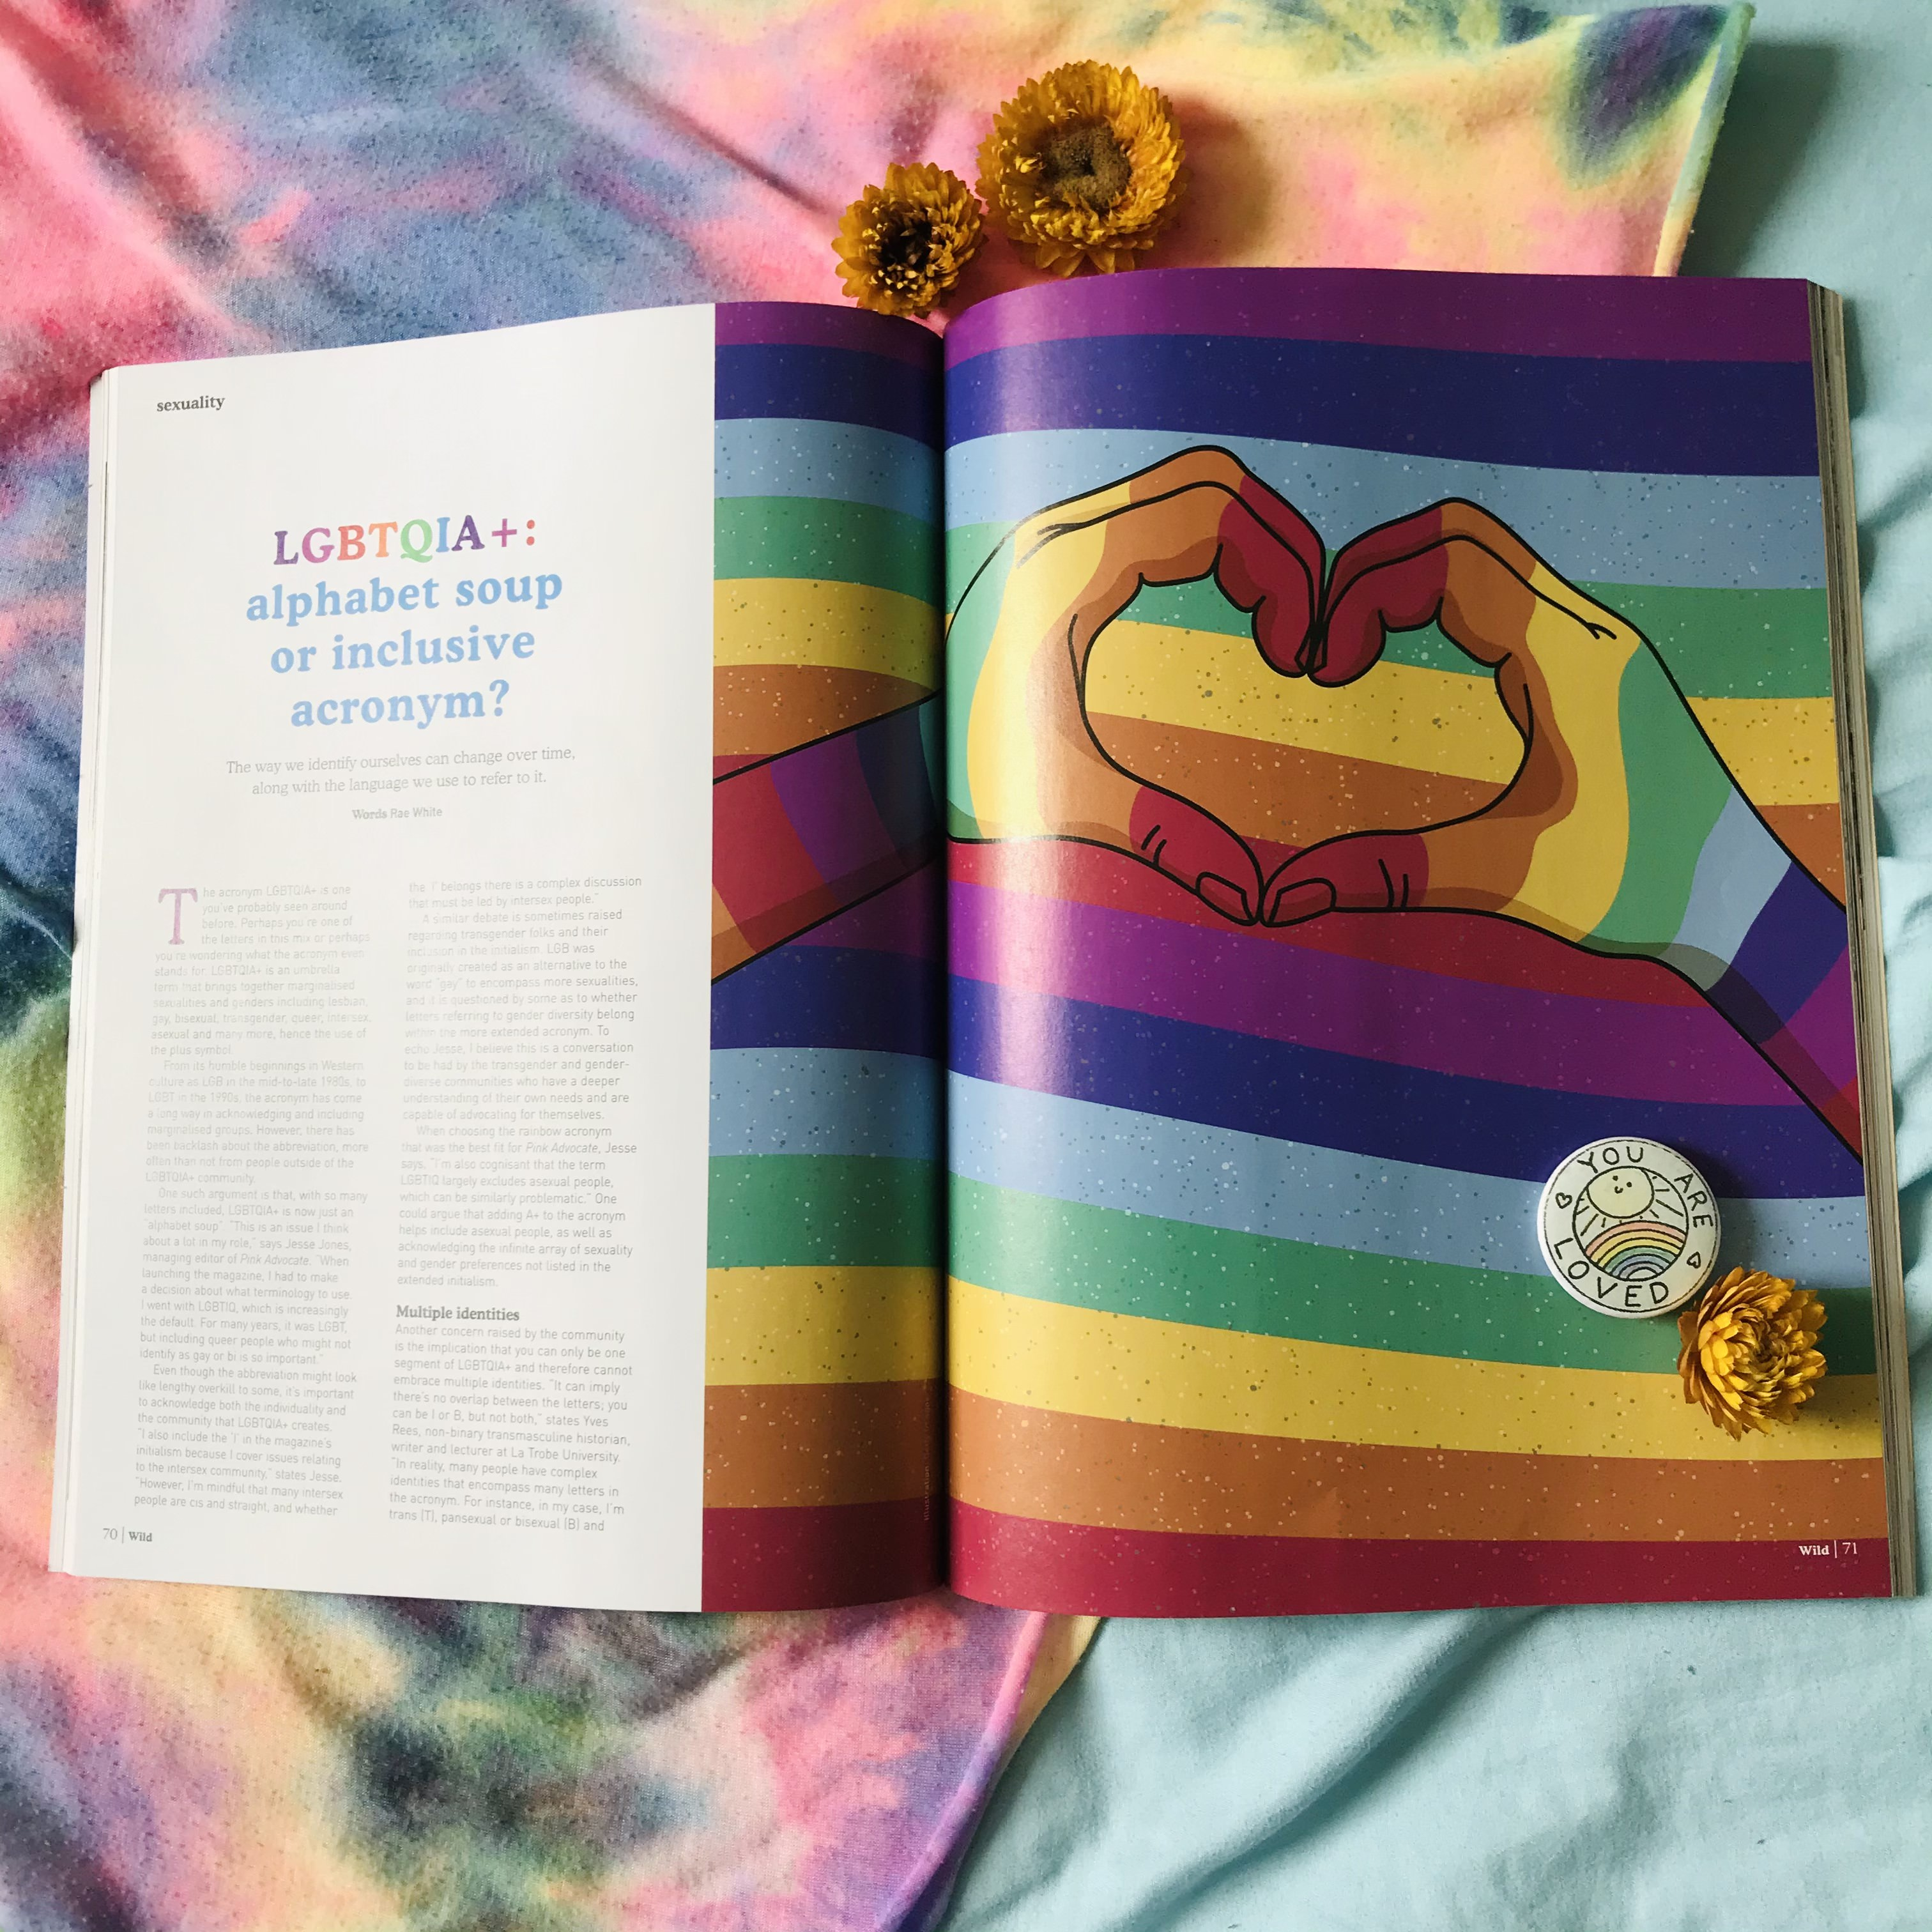 Photo of a magazine spread with the text 'LGBTQIA+: alphabet soup or inclusive acronym?' and a rainbow artistic image of hands in a heart shape, sitting on a background of rainbow with flowers and a 'you are loved' badge.